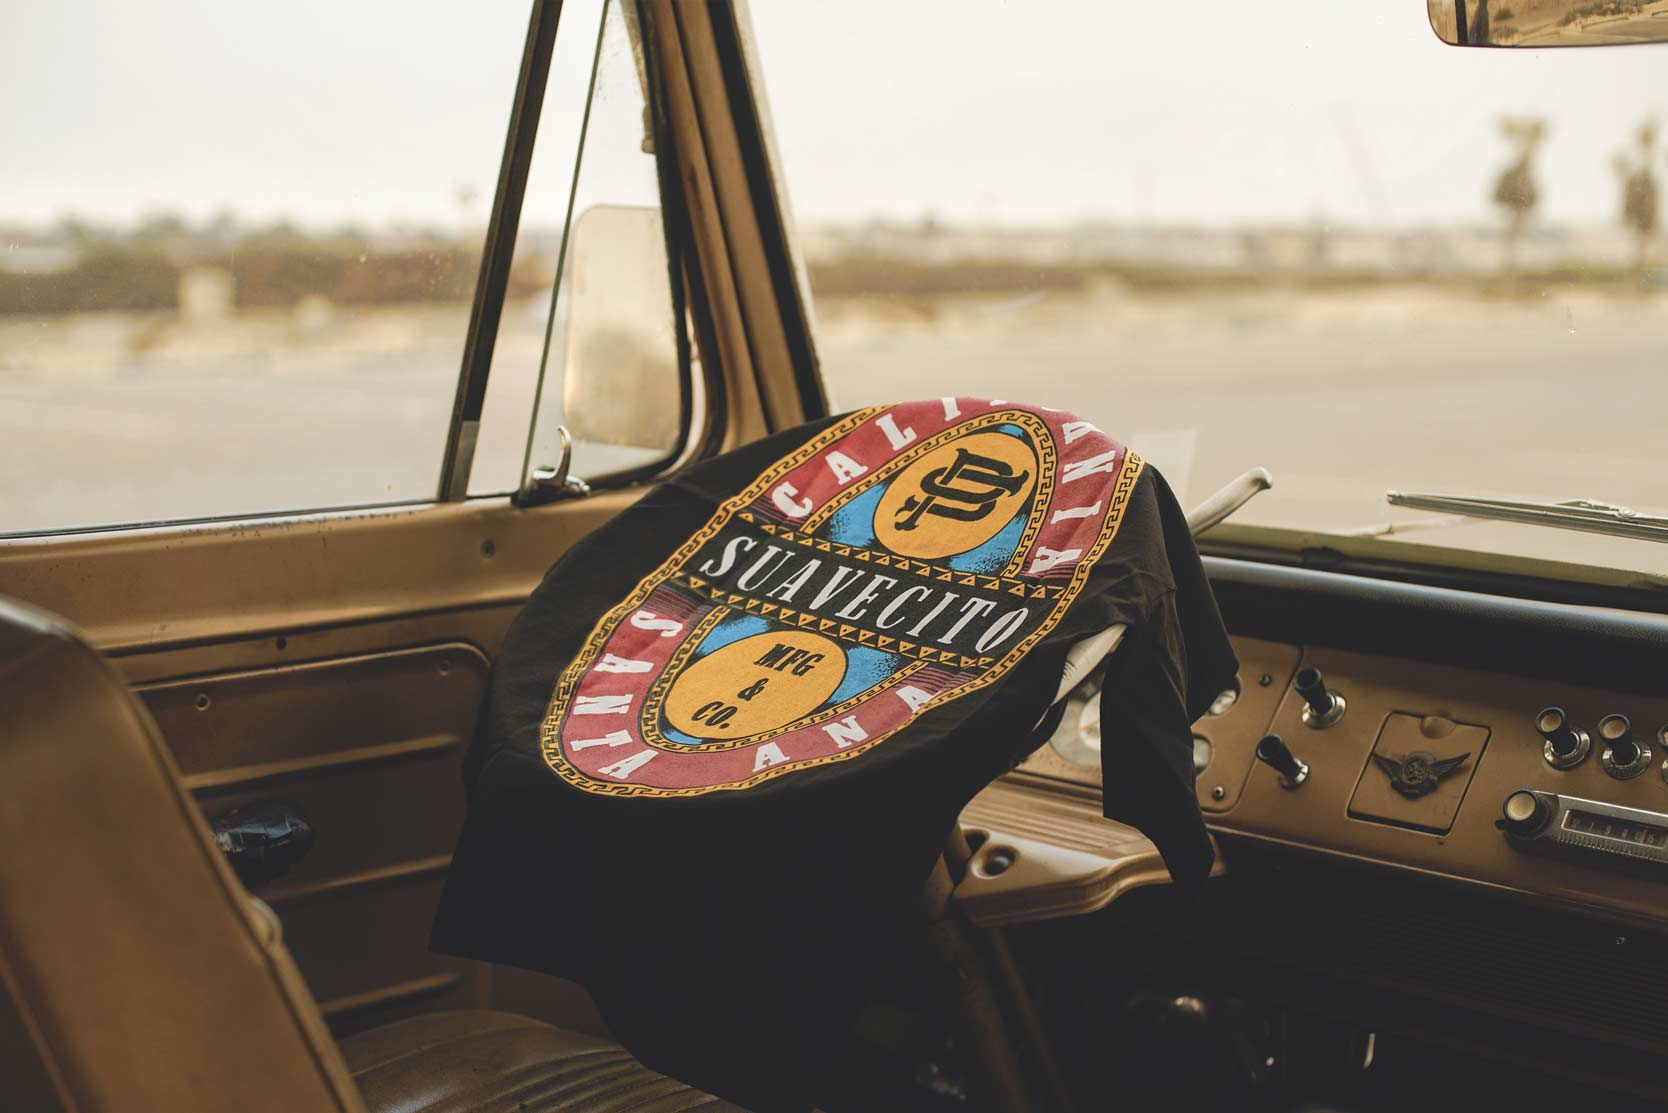 Steering Wheel Barley Tee Gabe on the Beach Suavecito Pomade